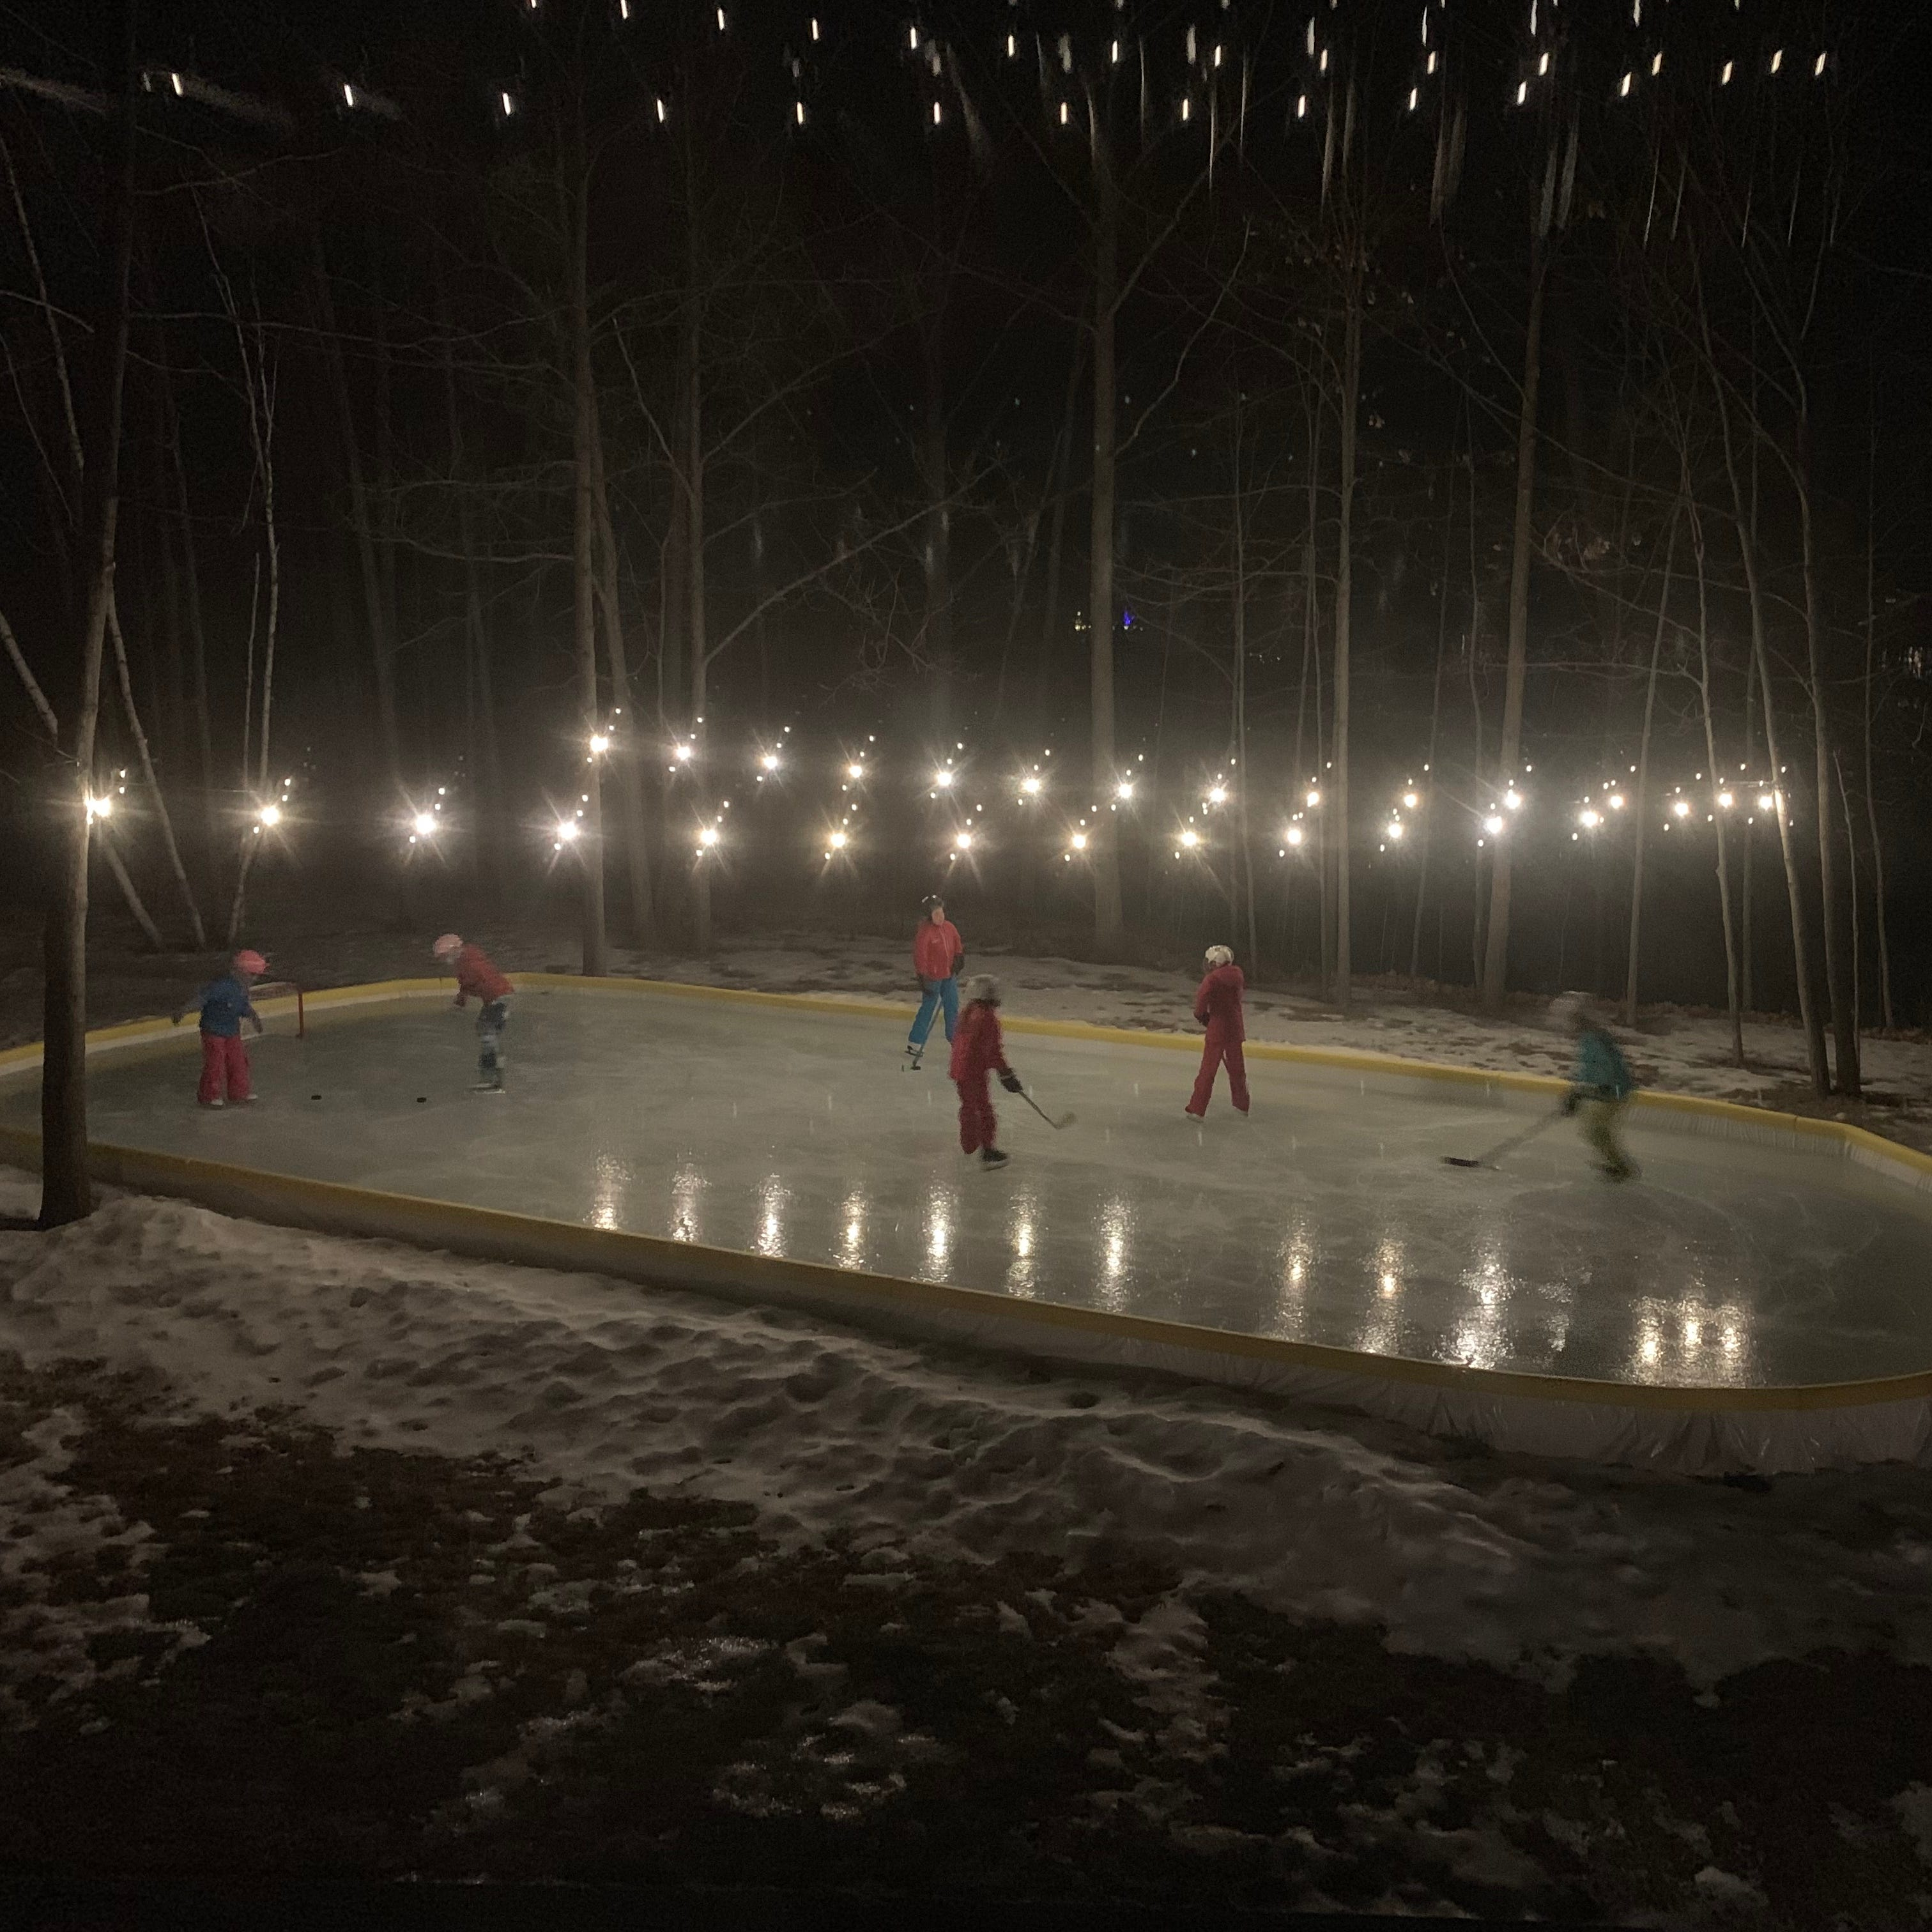 Not everyone is sick of winter — in Wisconsin, backyard ice rinks make cold weather worth it